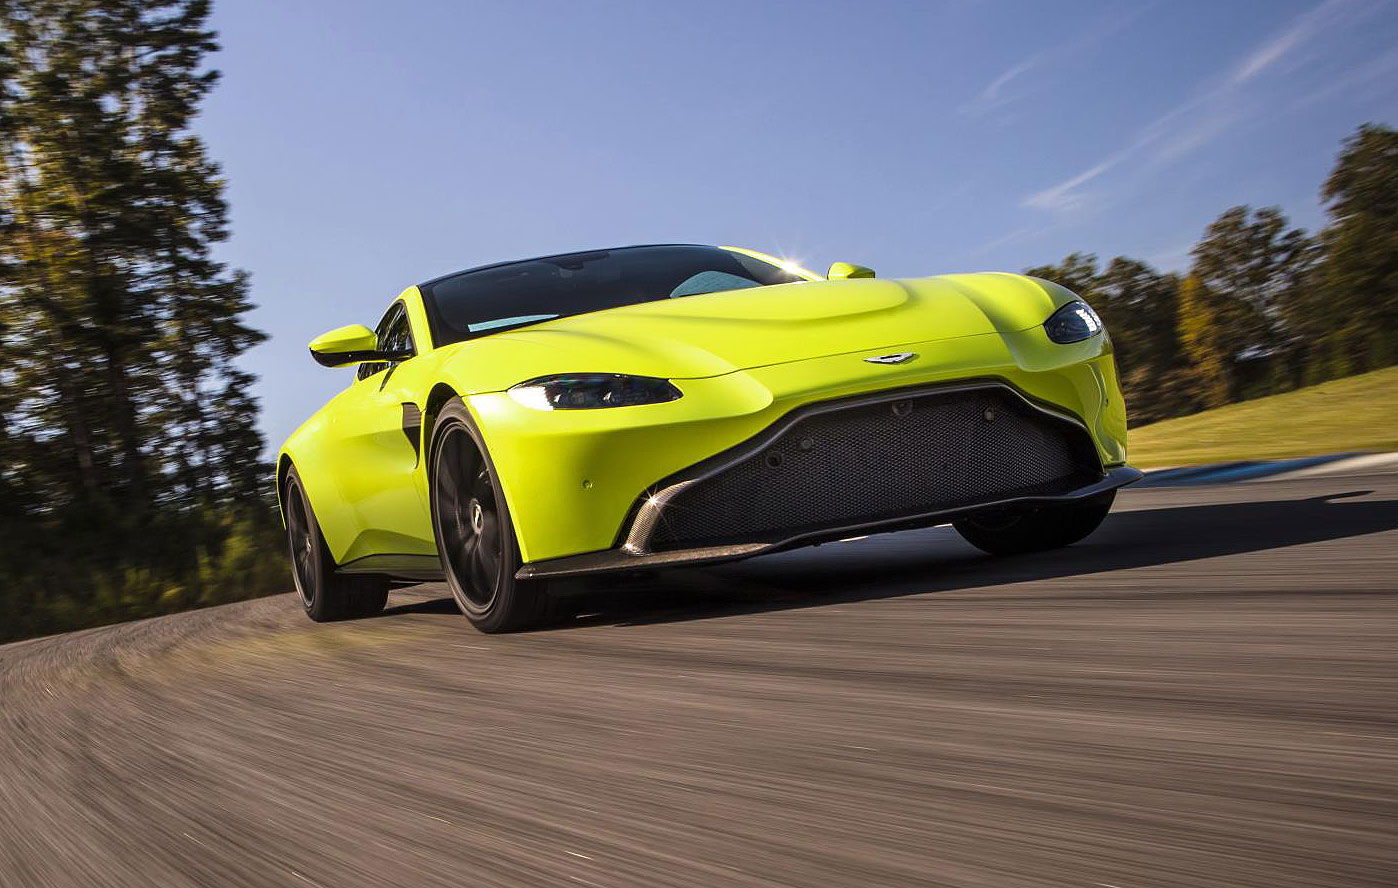 New Vantage: Bold New Look, Intensified Performance and Dynamics 8